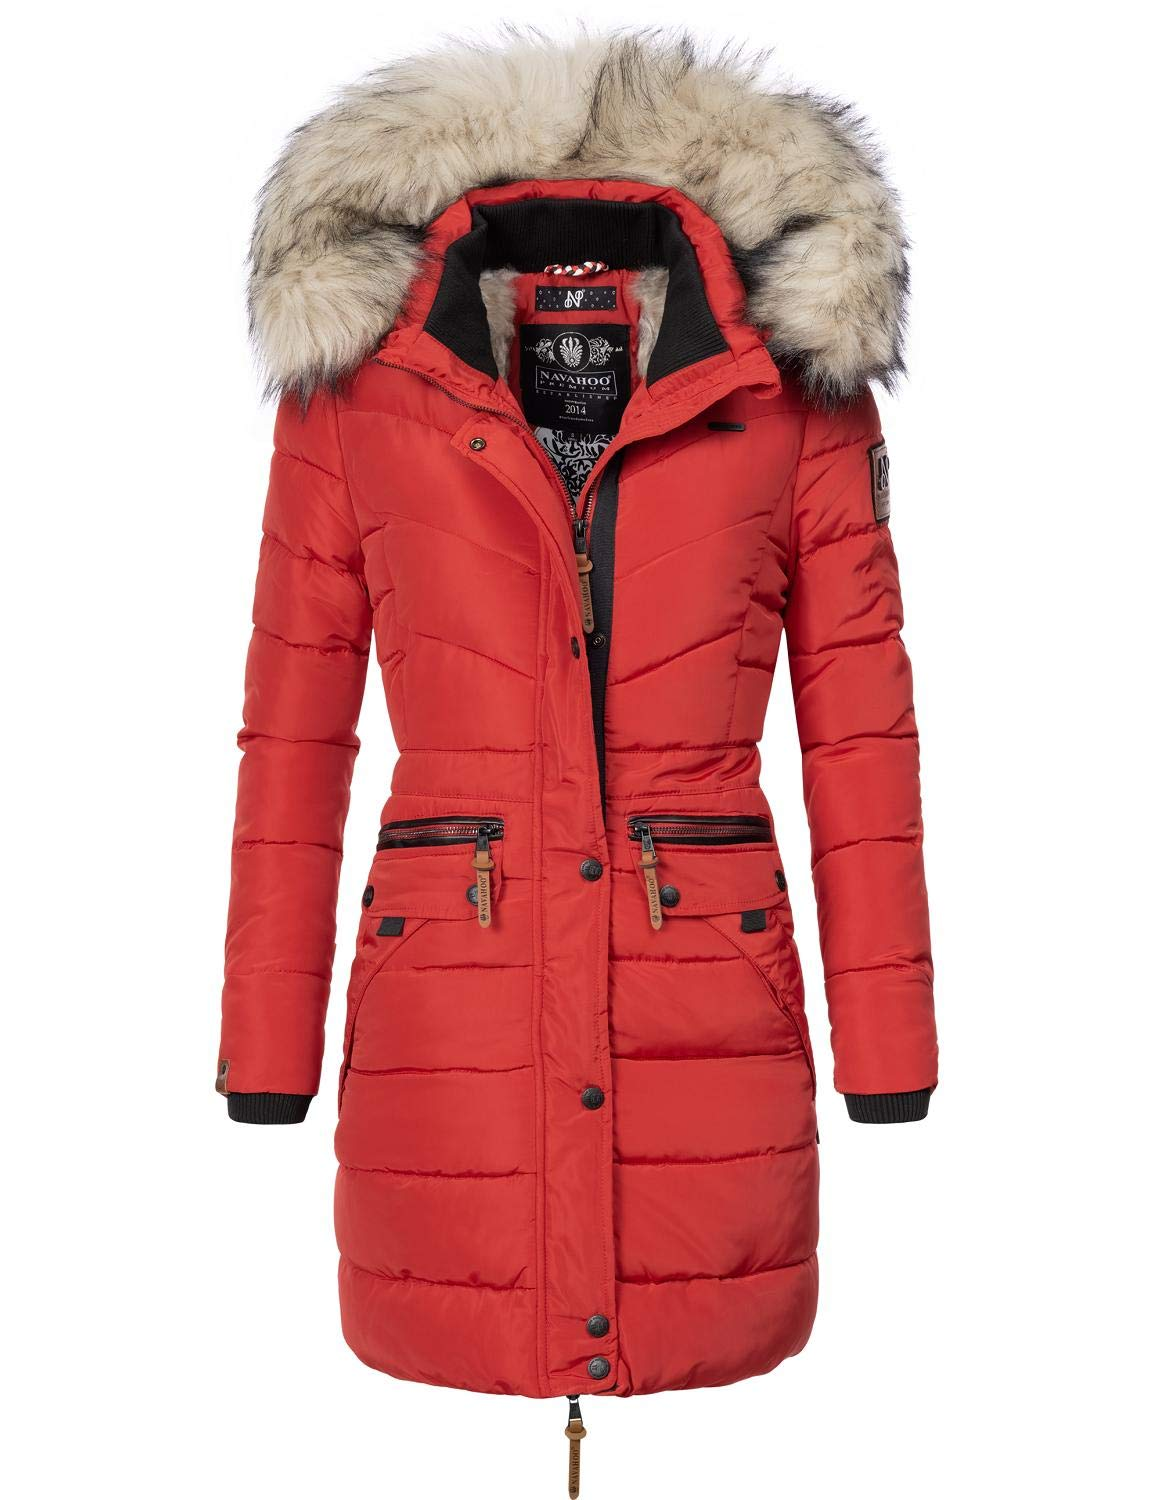 Winter Parka XL Fur Hood Geographical Norway Womens Jacket Belissima